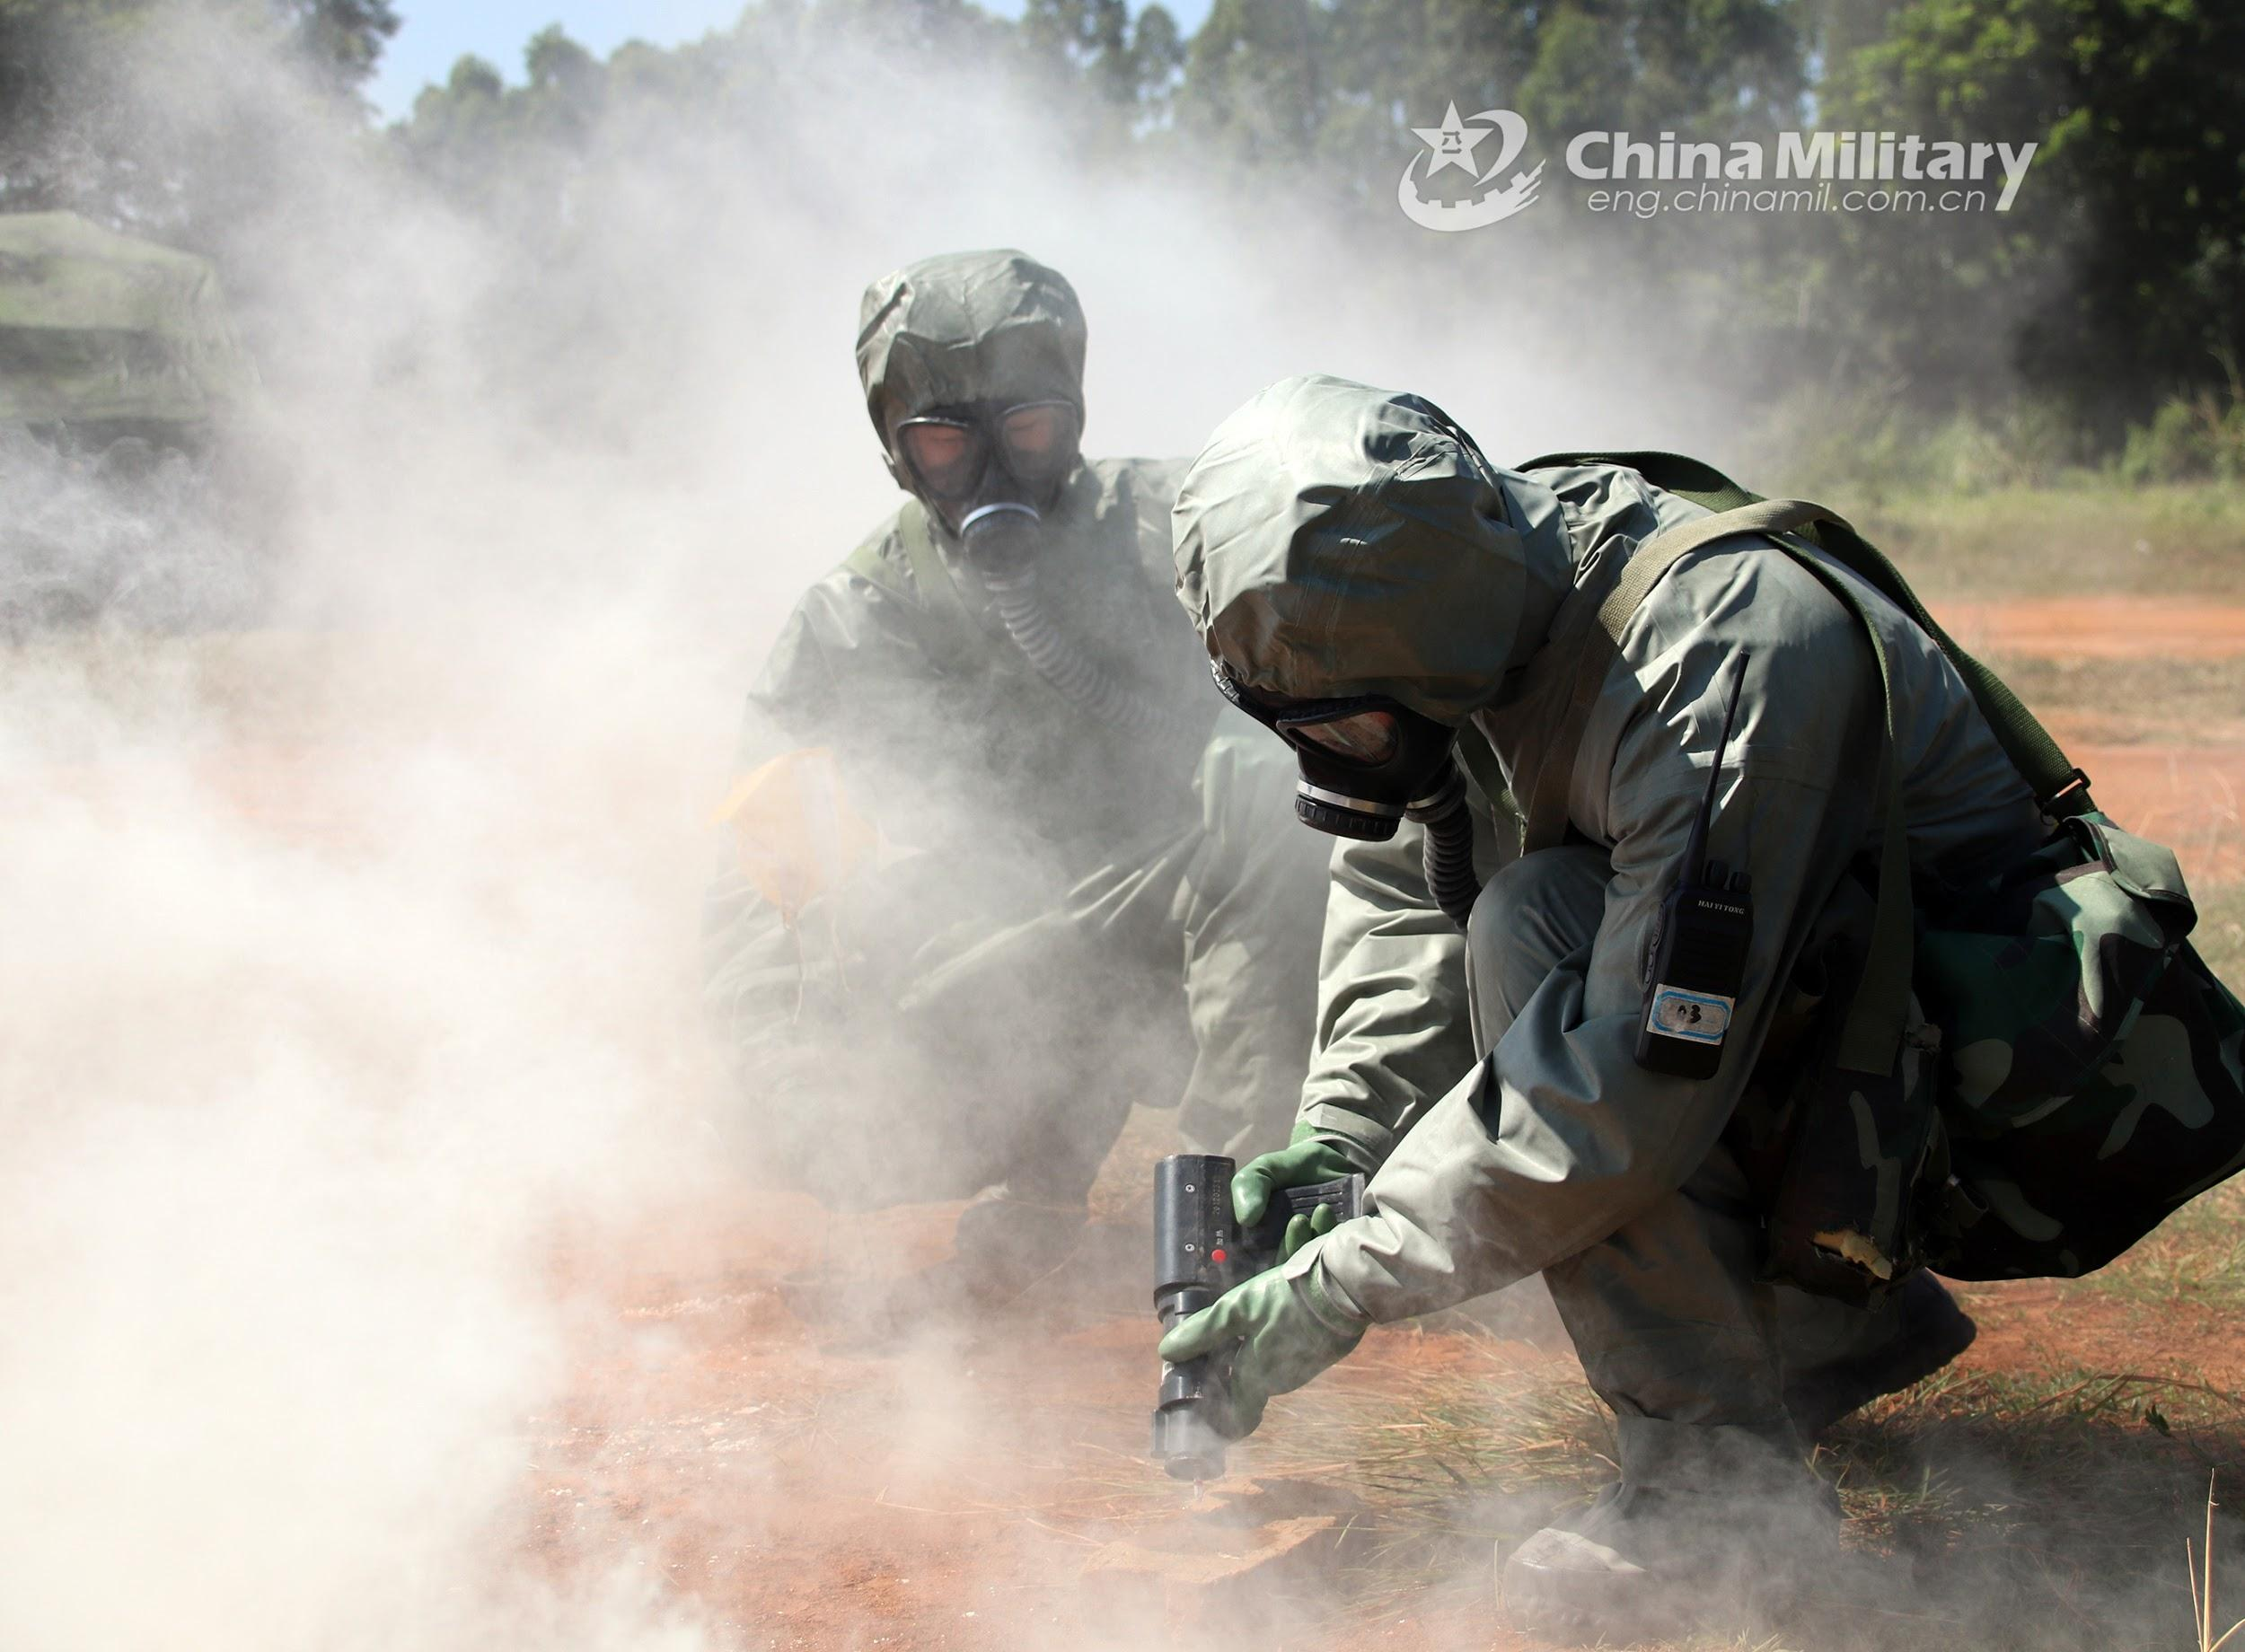 IMAGE 9: Chemical Defence battalion troops, Southern Theater Command